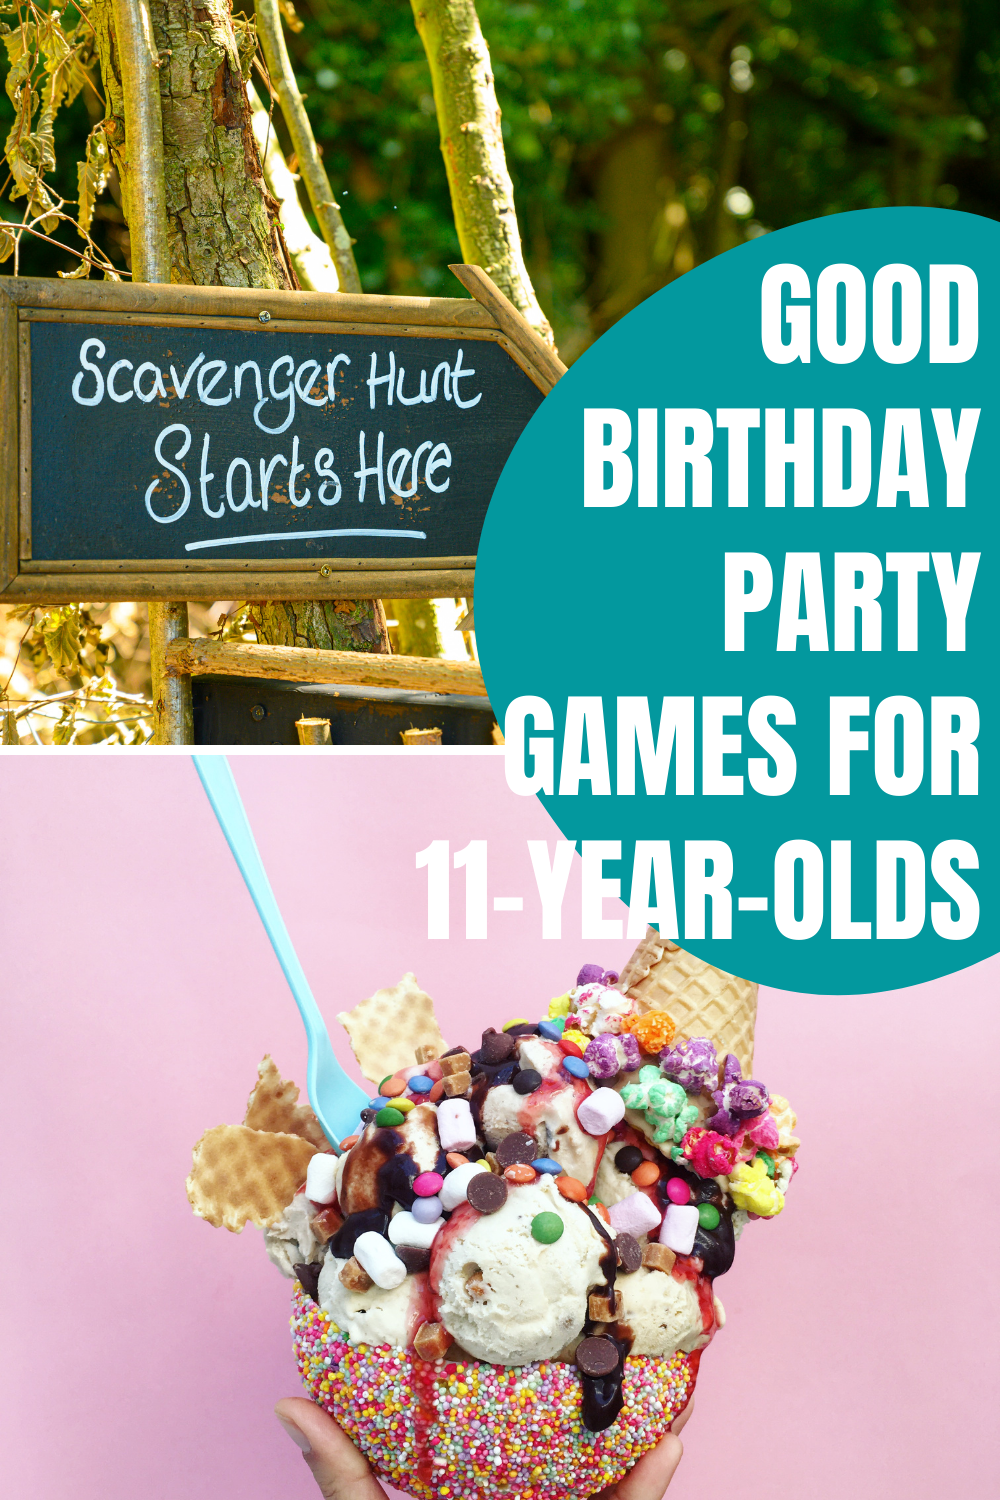 11-Year-Old Birthday Party Games Good Ideas